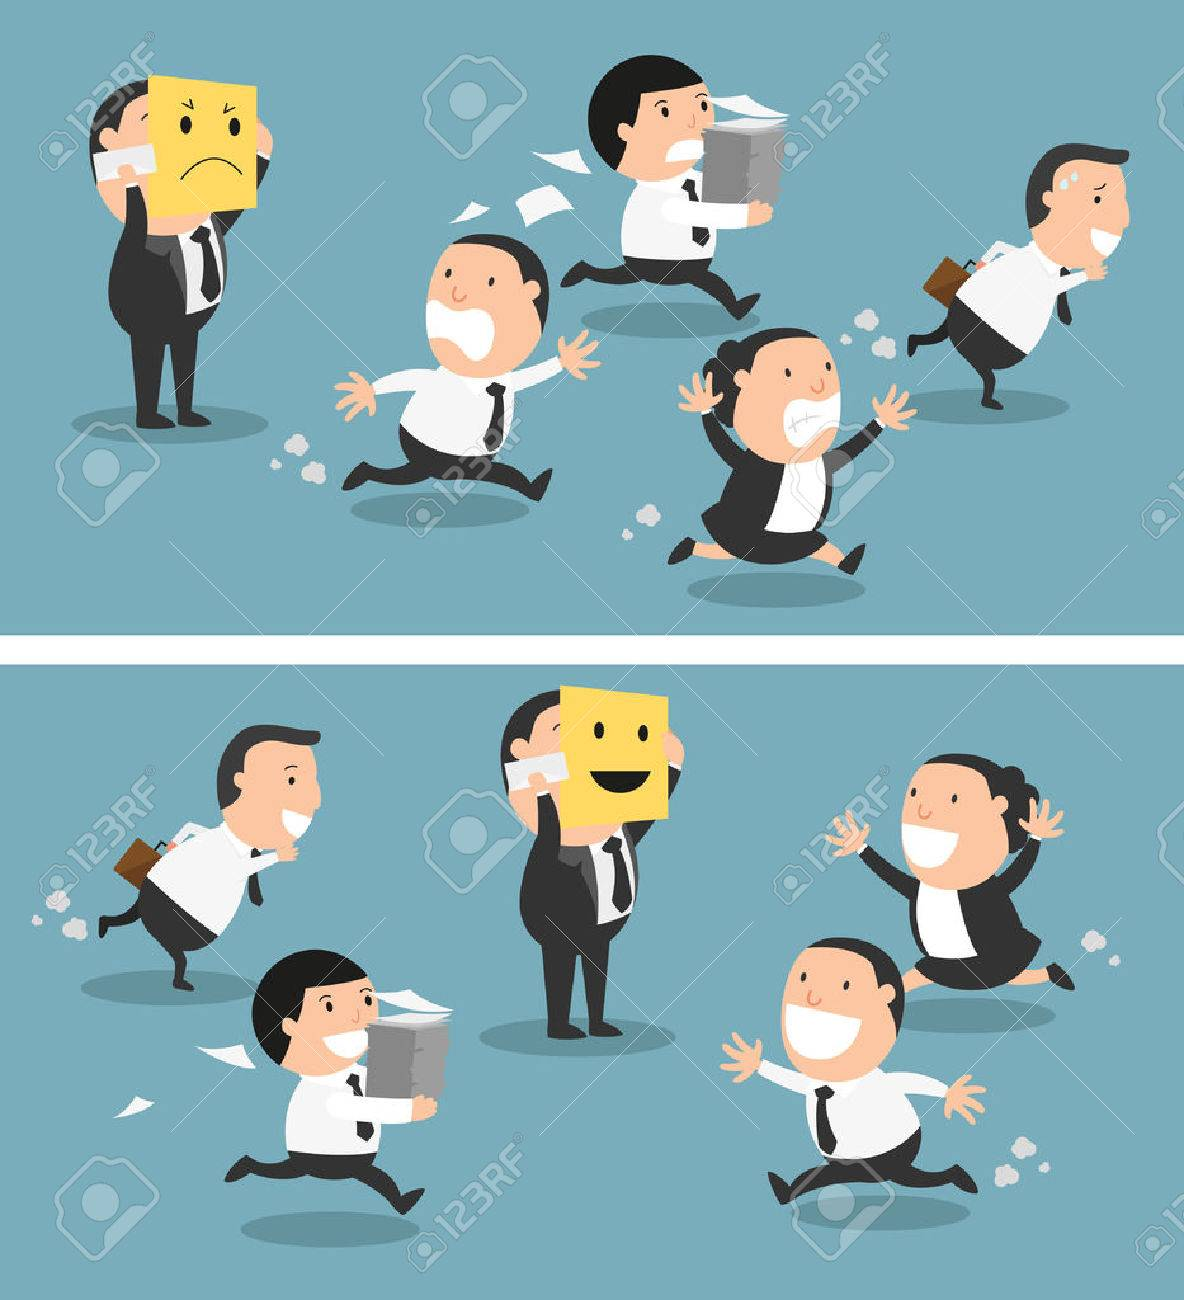 Boss changing his mood from bad to good,vector illustration - 59982765